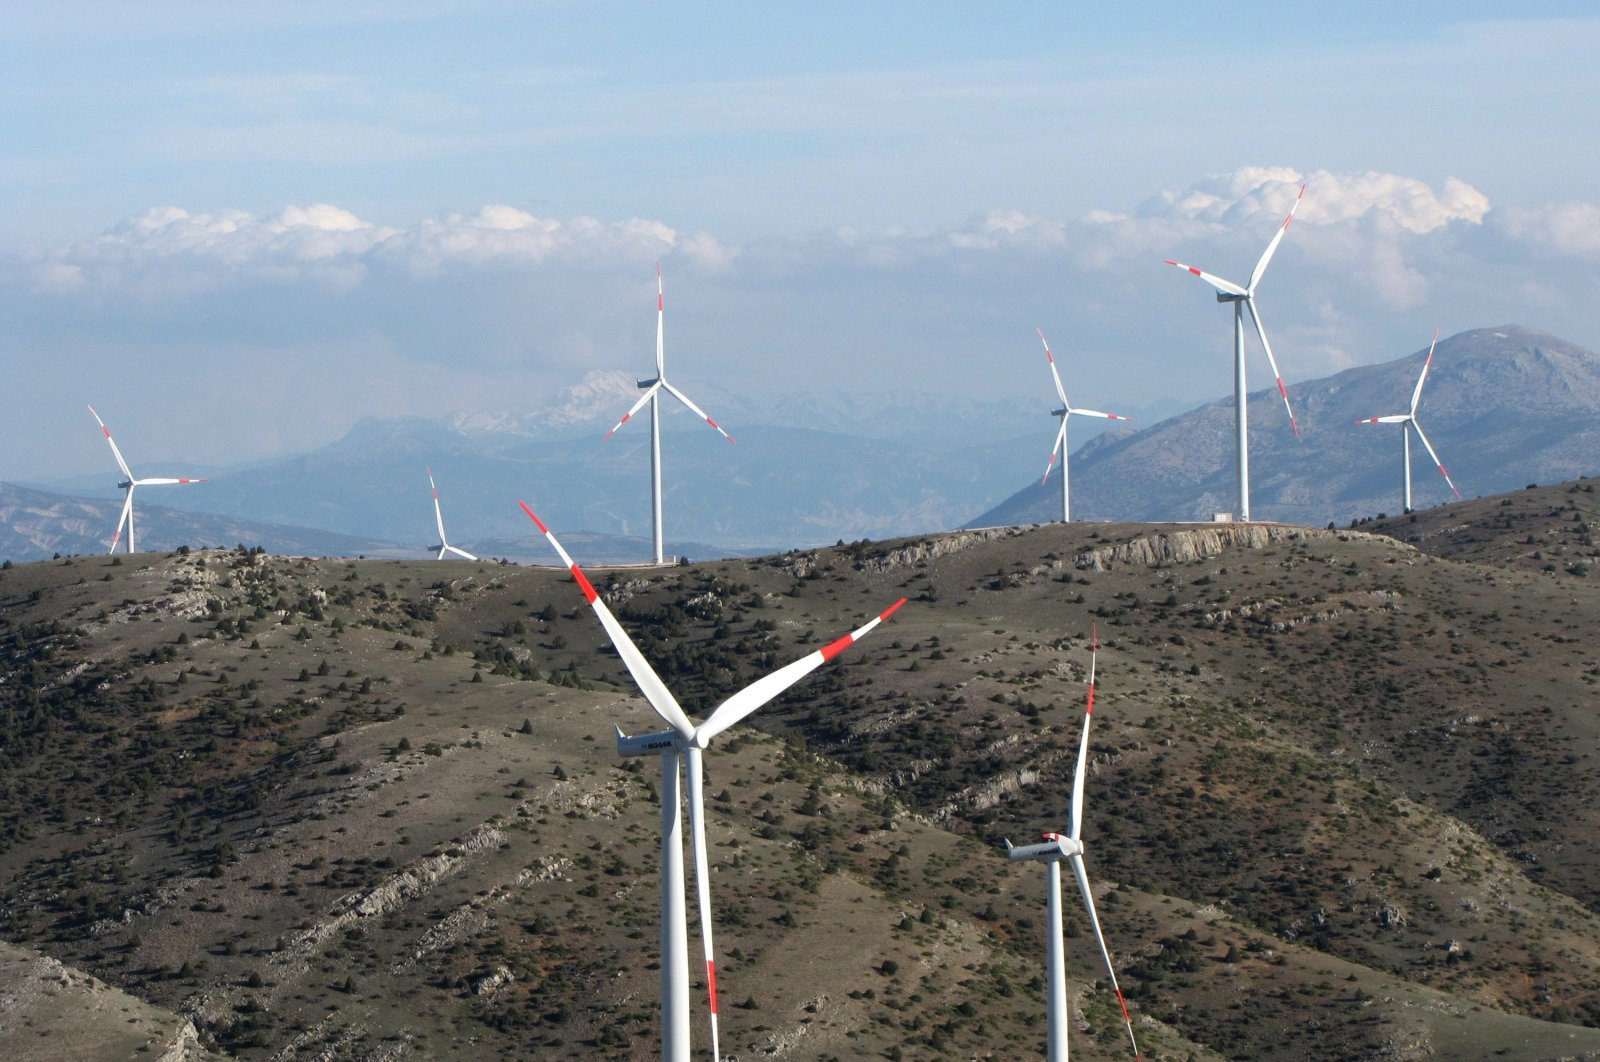 Wind turbines are seen in the Dinar district of Turkey's western province of Afyonkarahisar, March 28, 2019. (AA Photo)